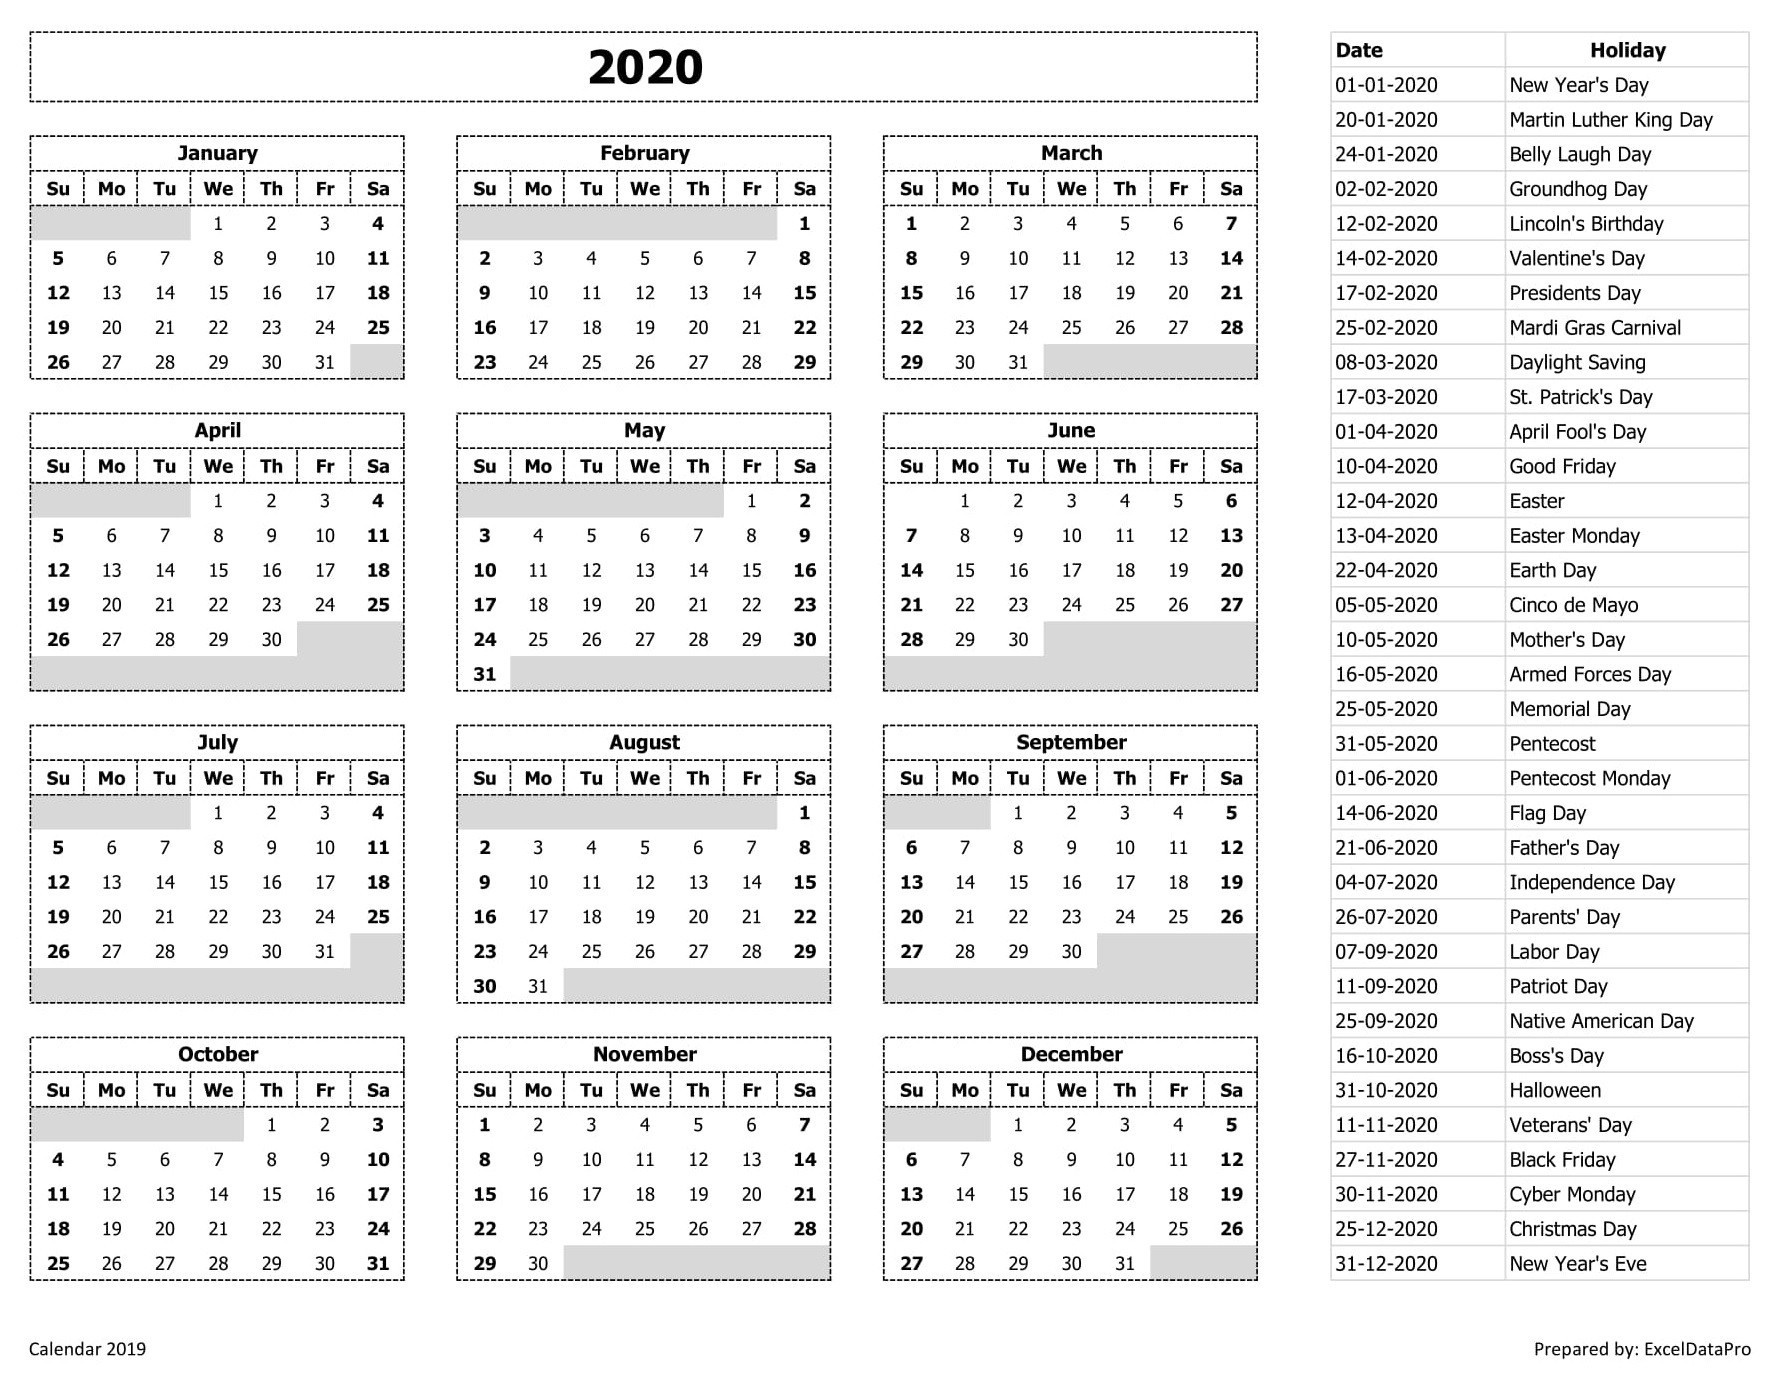 List Of Holidays By Month 2020 | Calendar Template Printable-2020 List Of Holidays Printable